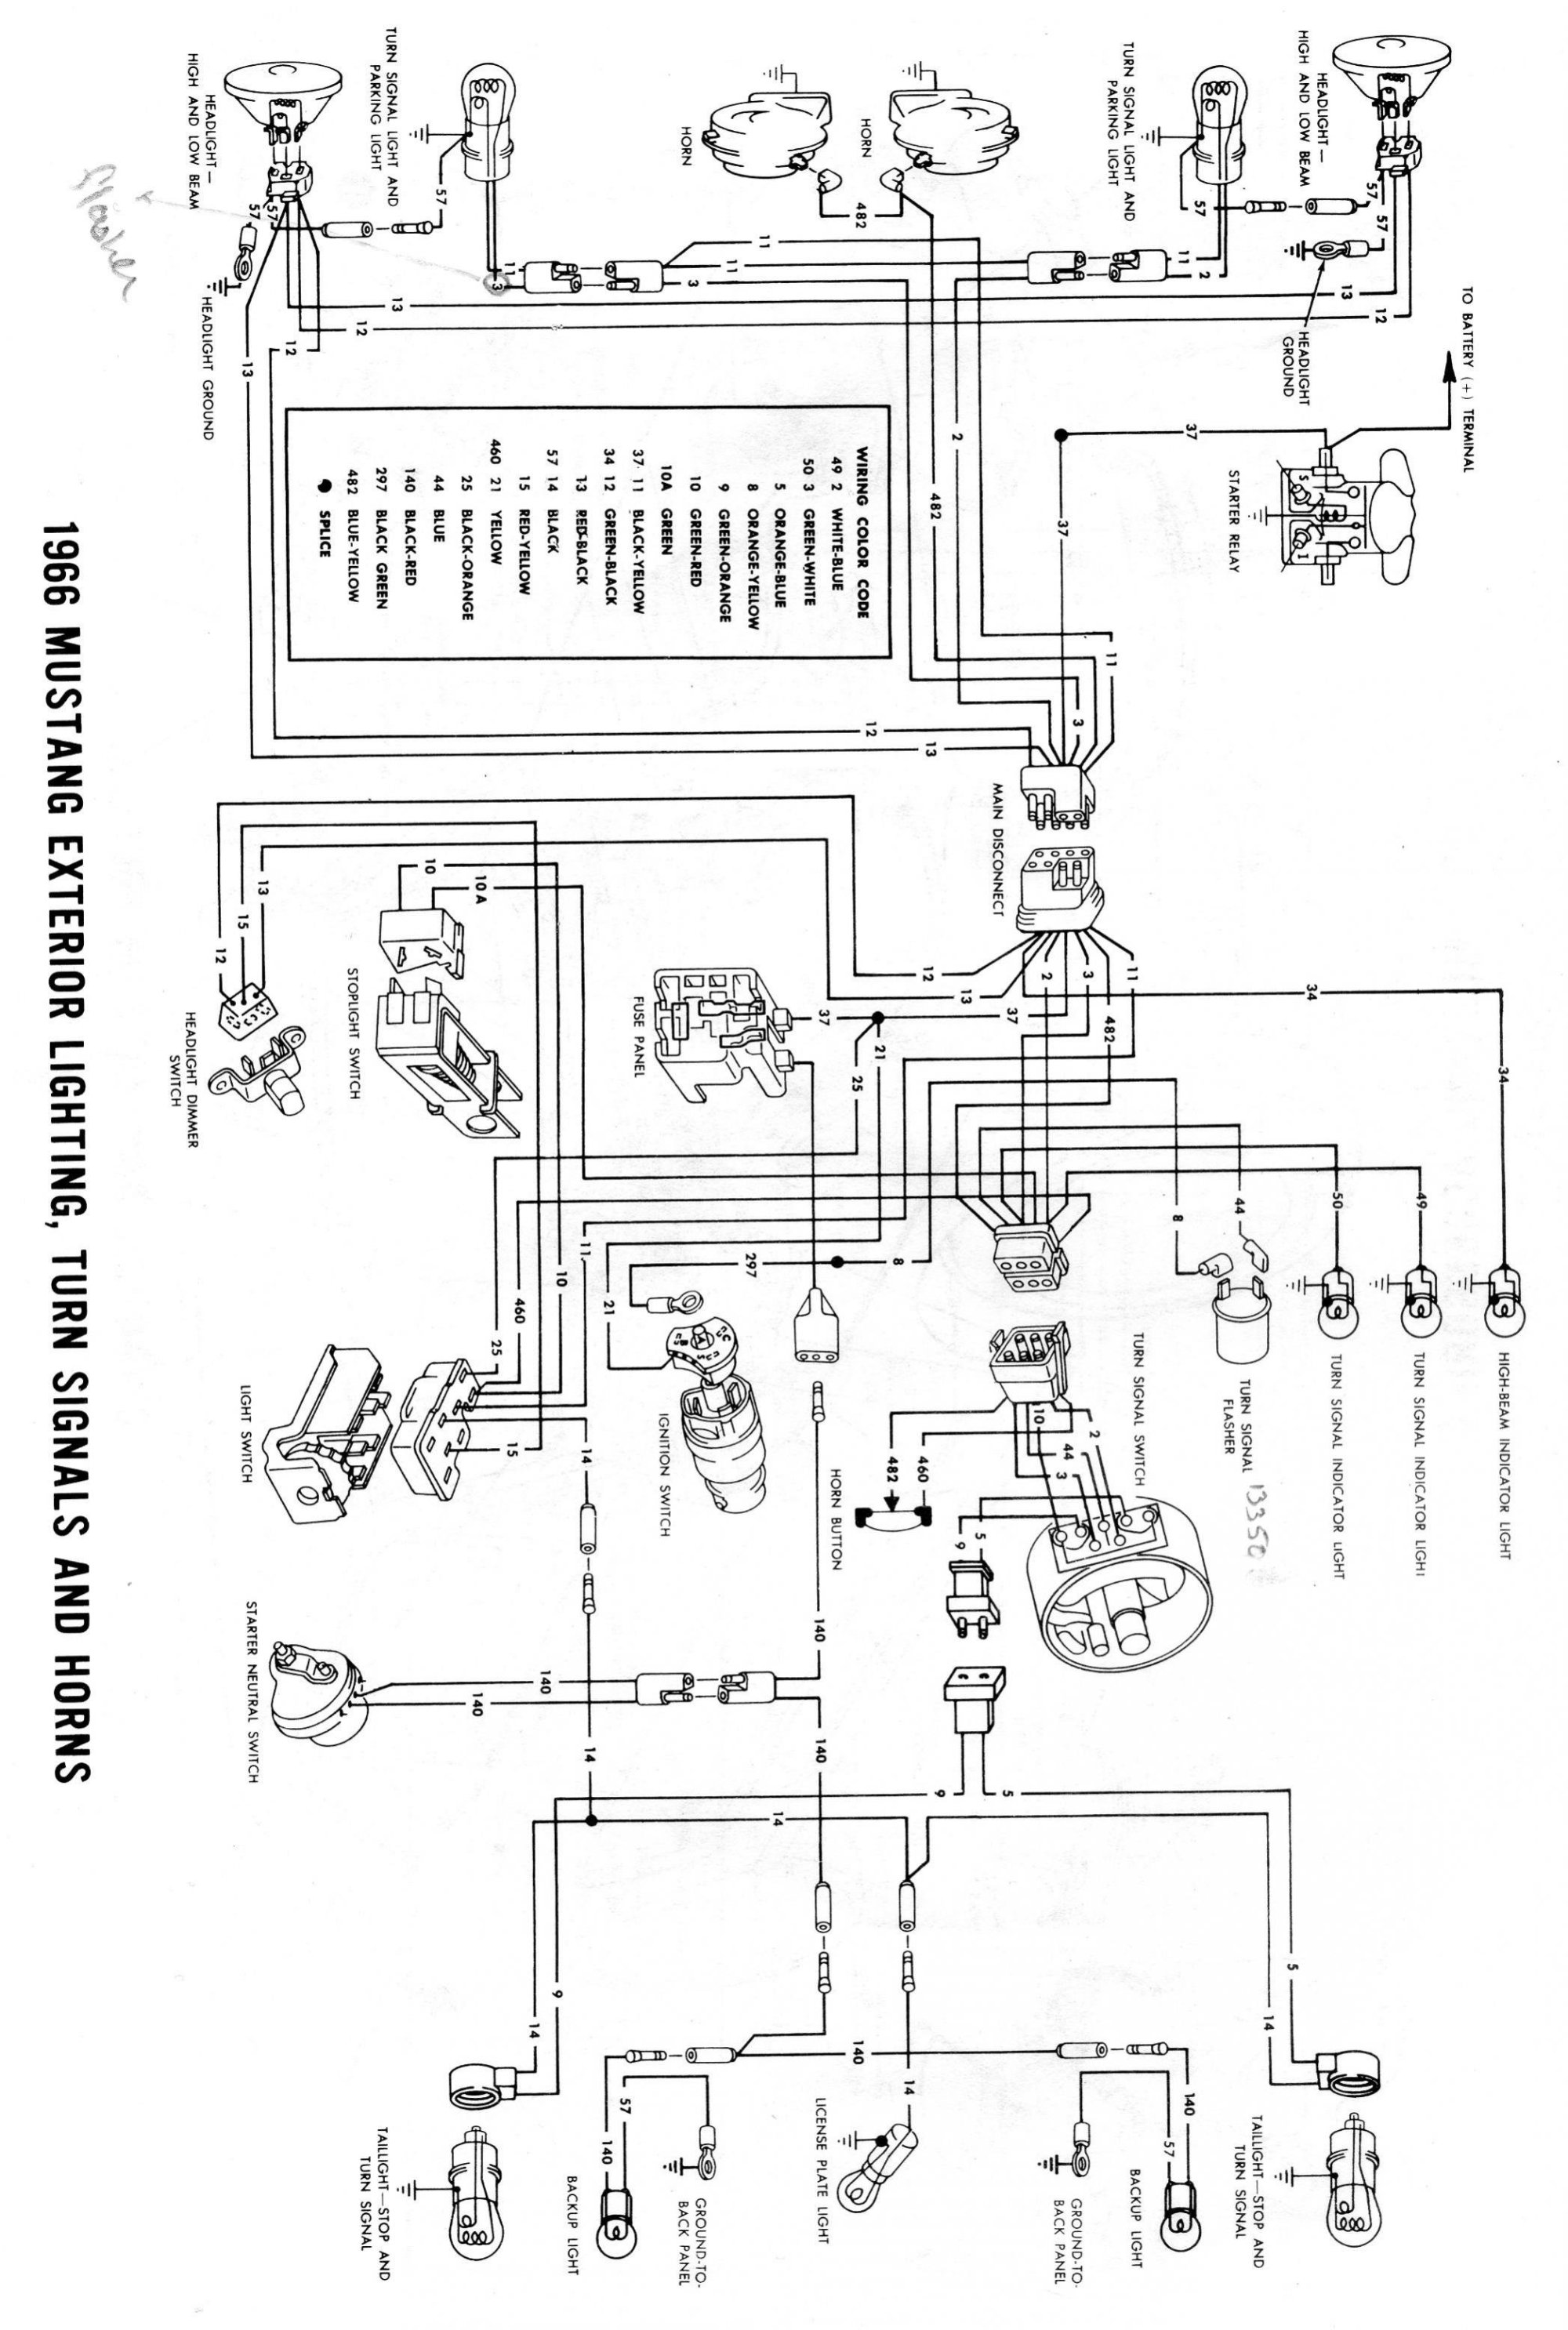 hight resolution of 72 mustang wiring diagram wiring diagrams scematic mustang air conditioning diagram 70 mustang horn wiring diagram